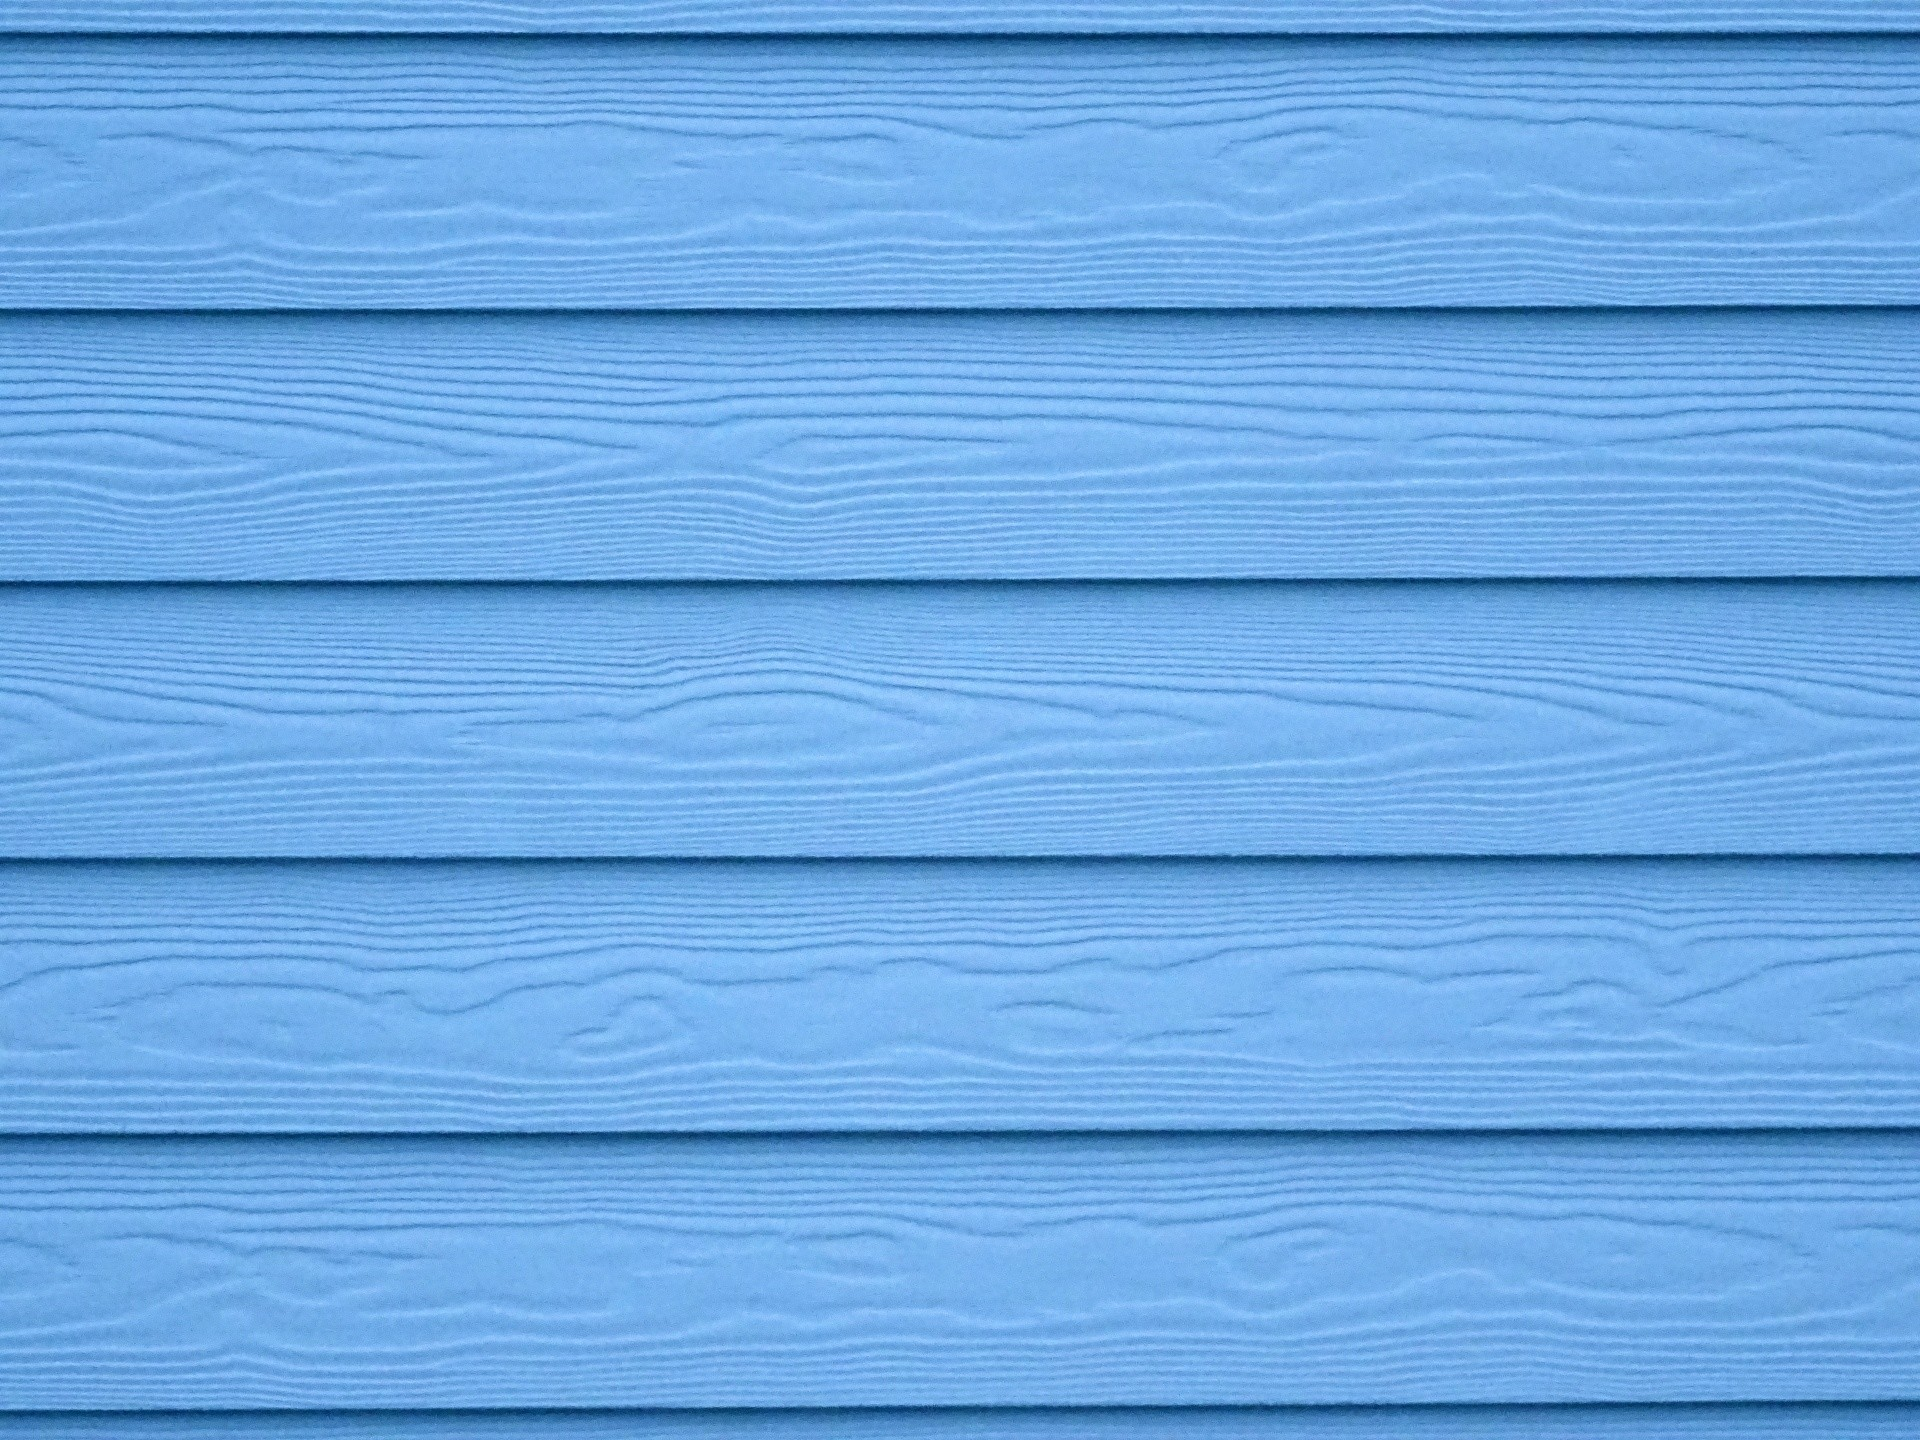 Blue Wood Texture Wallpaper